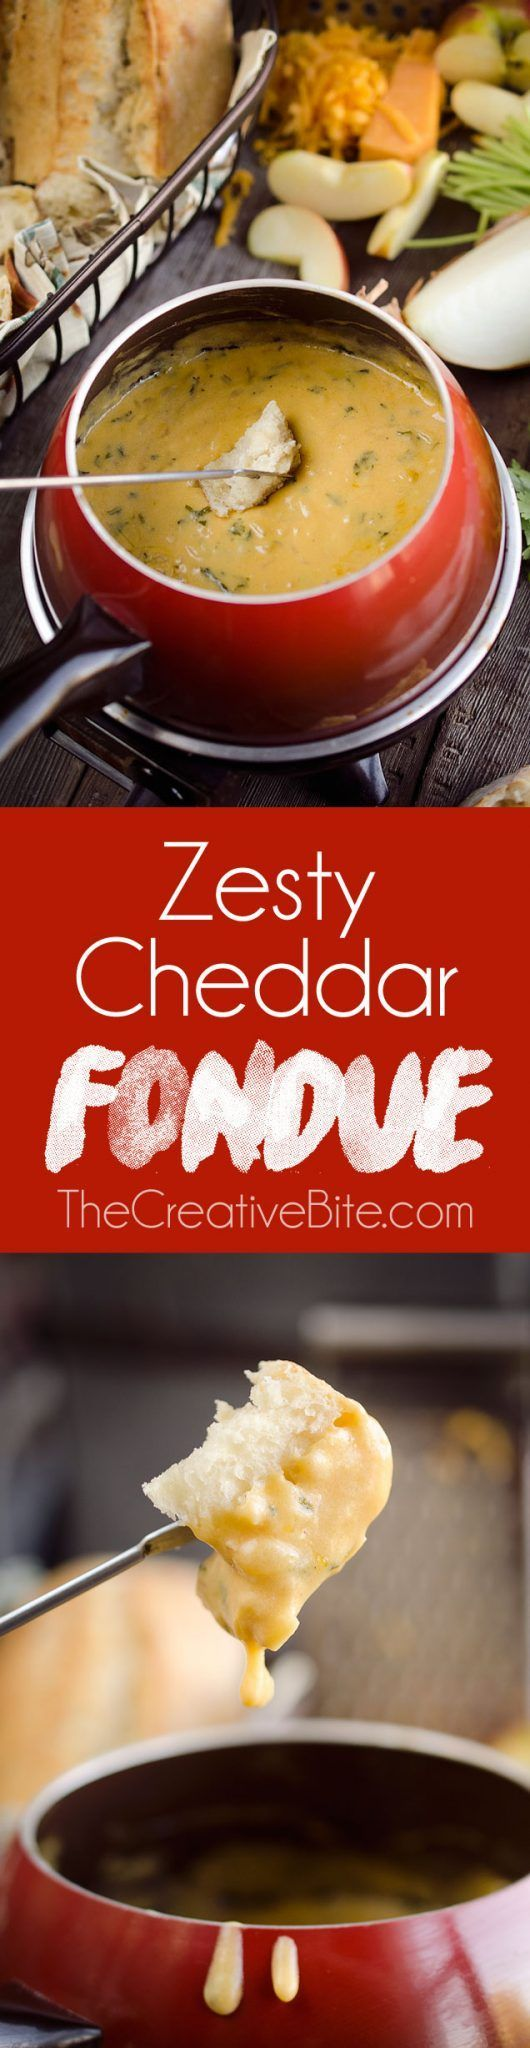 Zesty Cheddar Fondue is an easy and delicious appetizer perfect for the holidays. It is a creamy cheese fondue filled with rich sharp cheddar, onions, garlic and cilantro that pairs perfectly with bread and apples. #Fondue #Cheese #Appetizer #Holidays